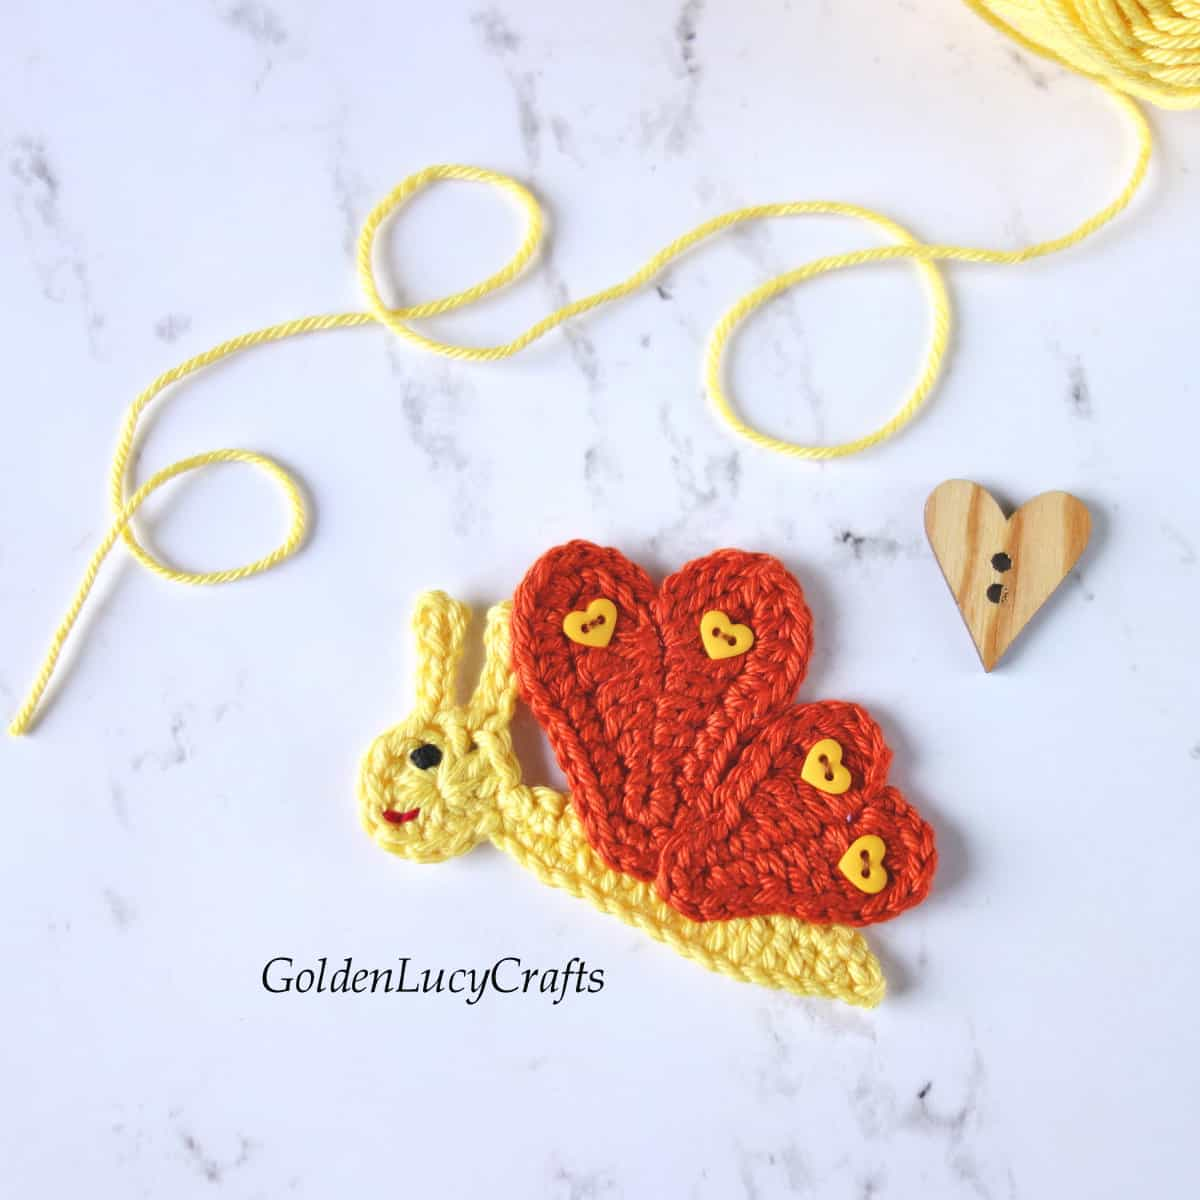 Crochet butterfly applique in yellow and brown color with heart-shaped wings.